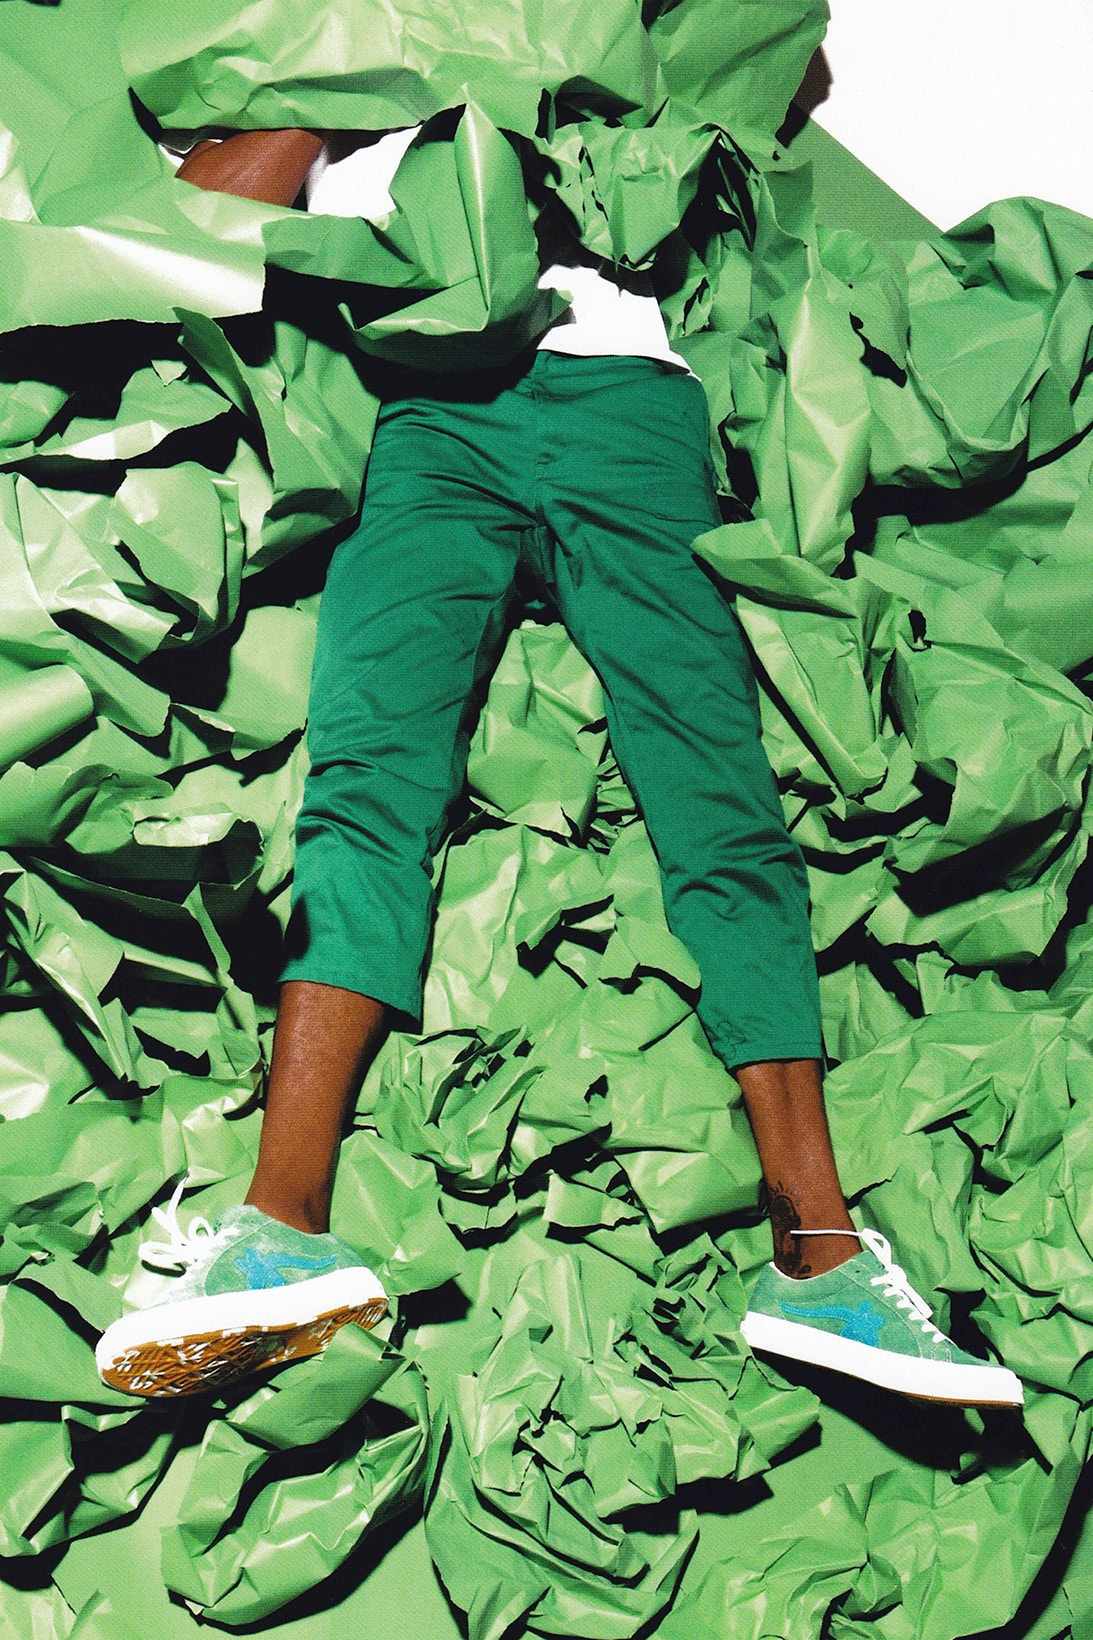 Tyler, The Creator and Converse Team Up For a New GOLF le FLEUR Signature Sneaker